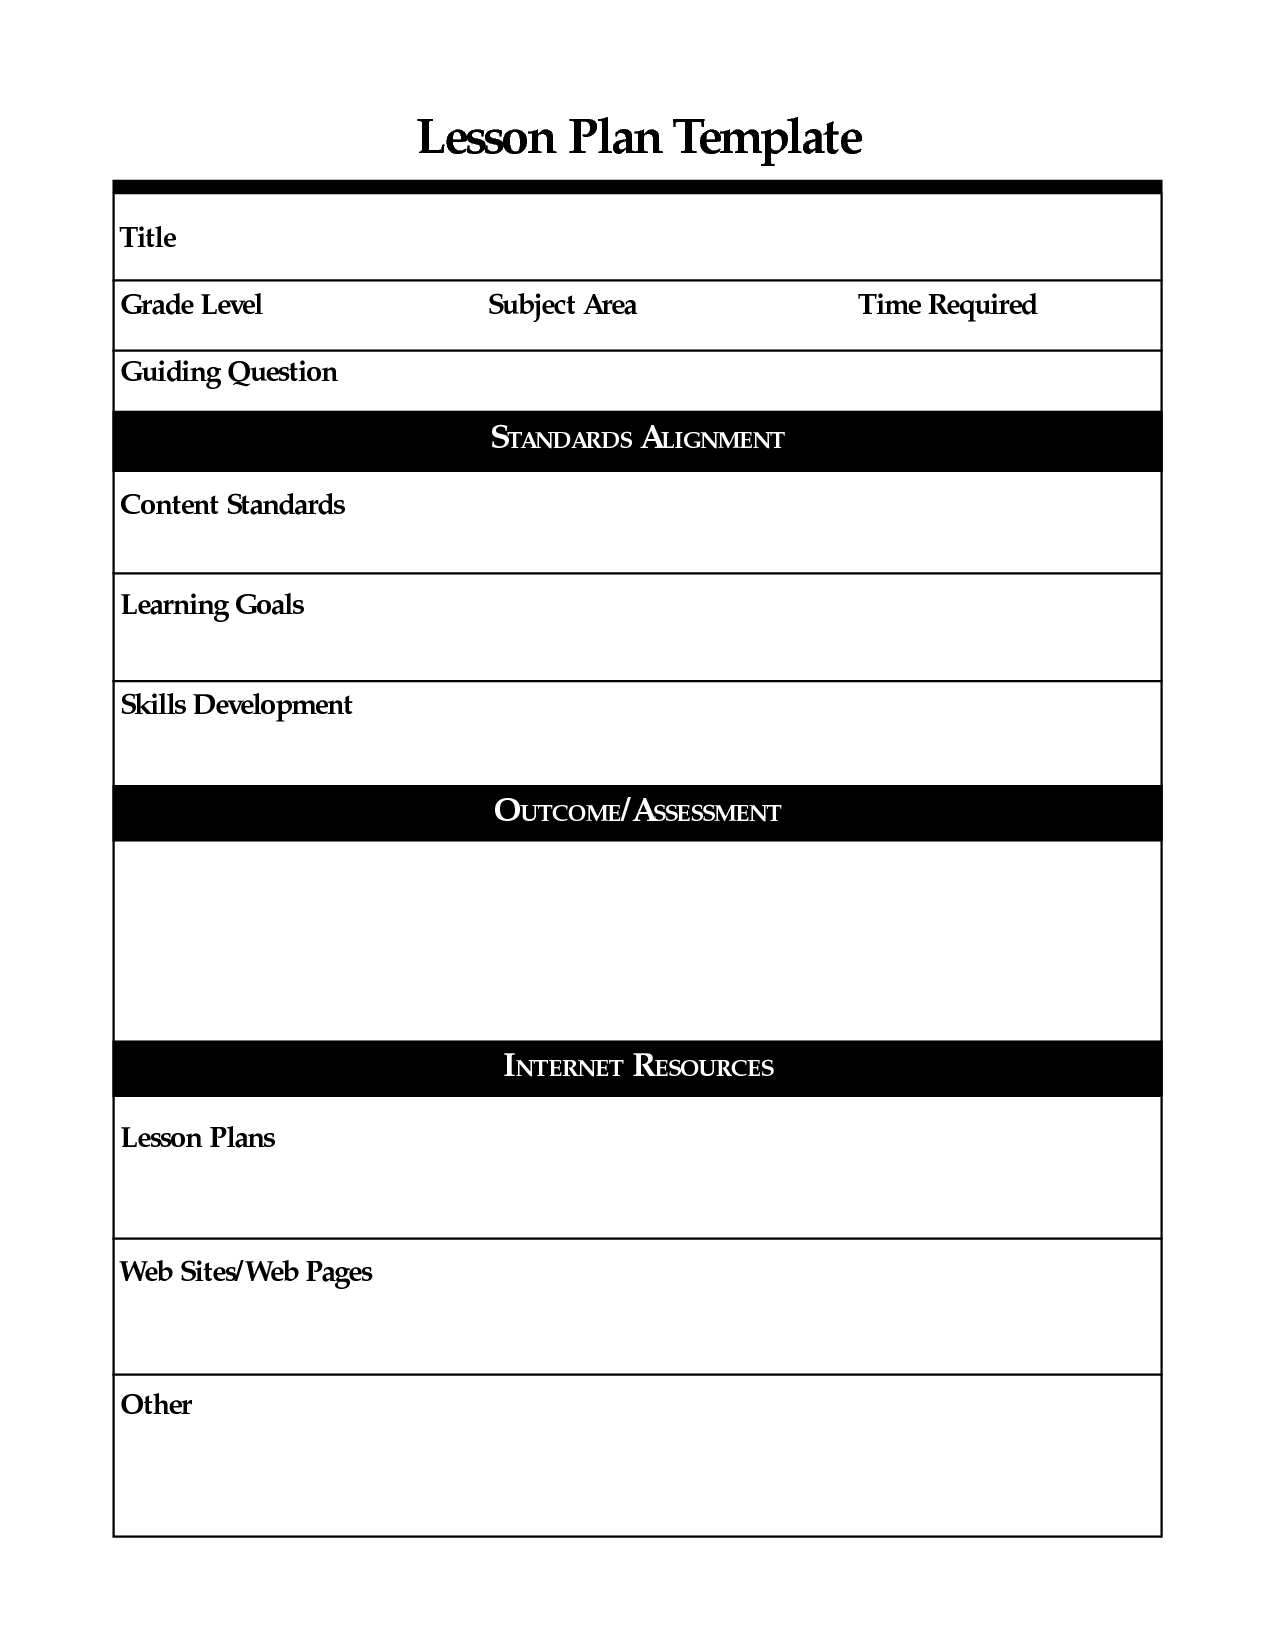 Printable Lesson Plan Template, Free To Download - Free Printable Lesson Plan Template Blank